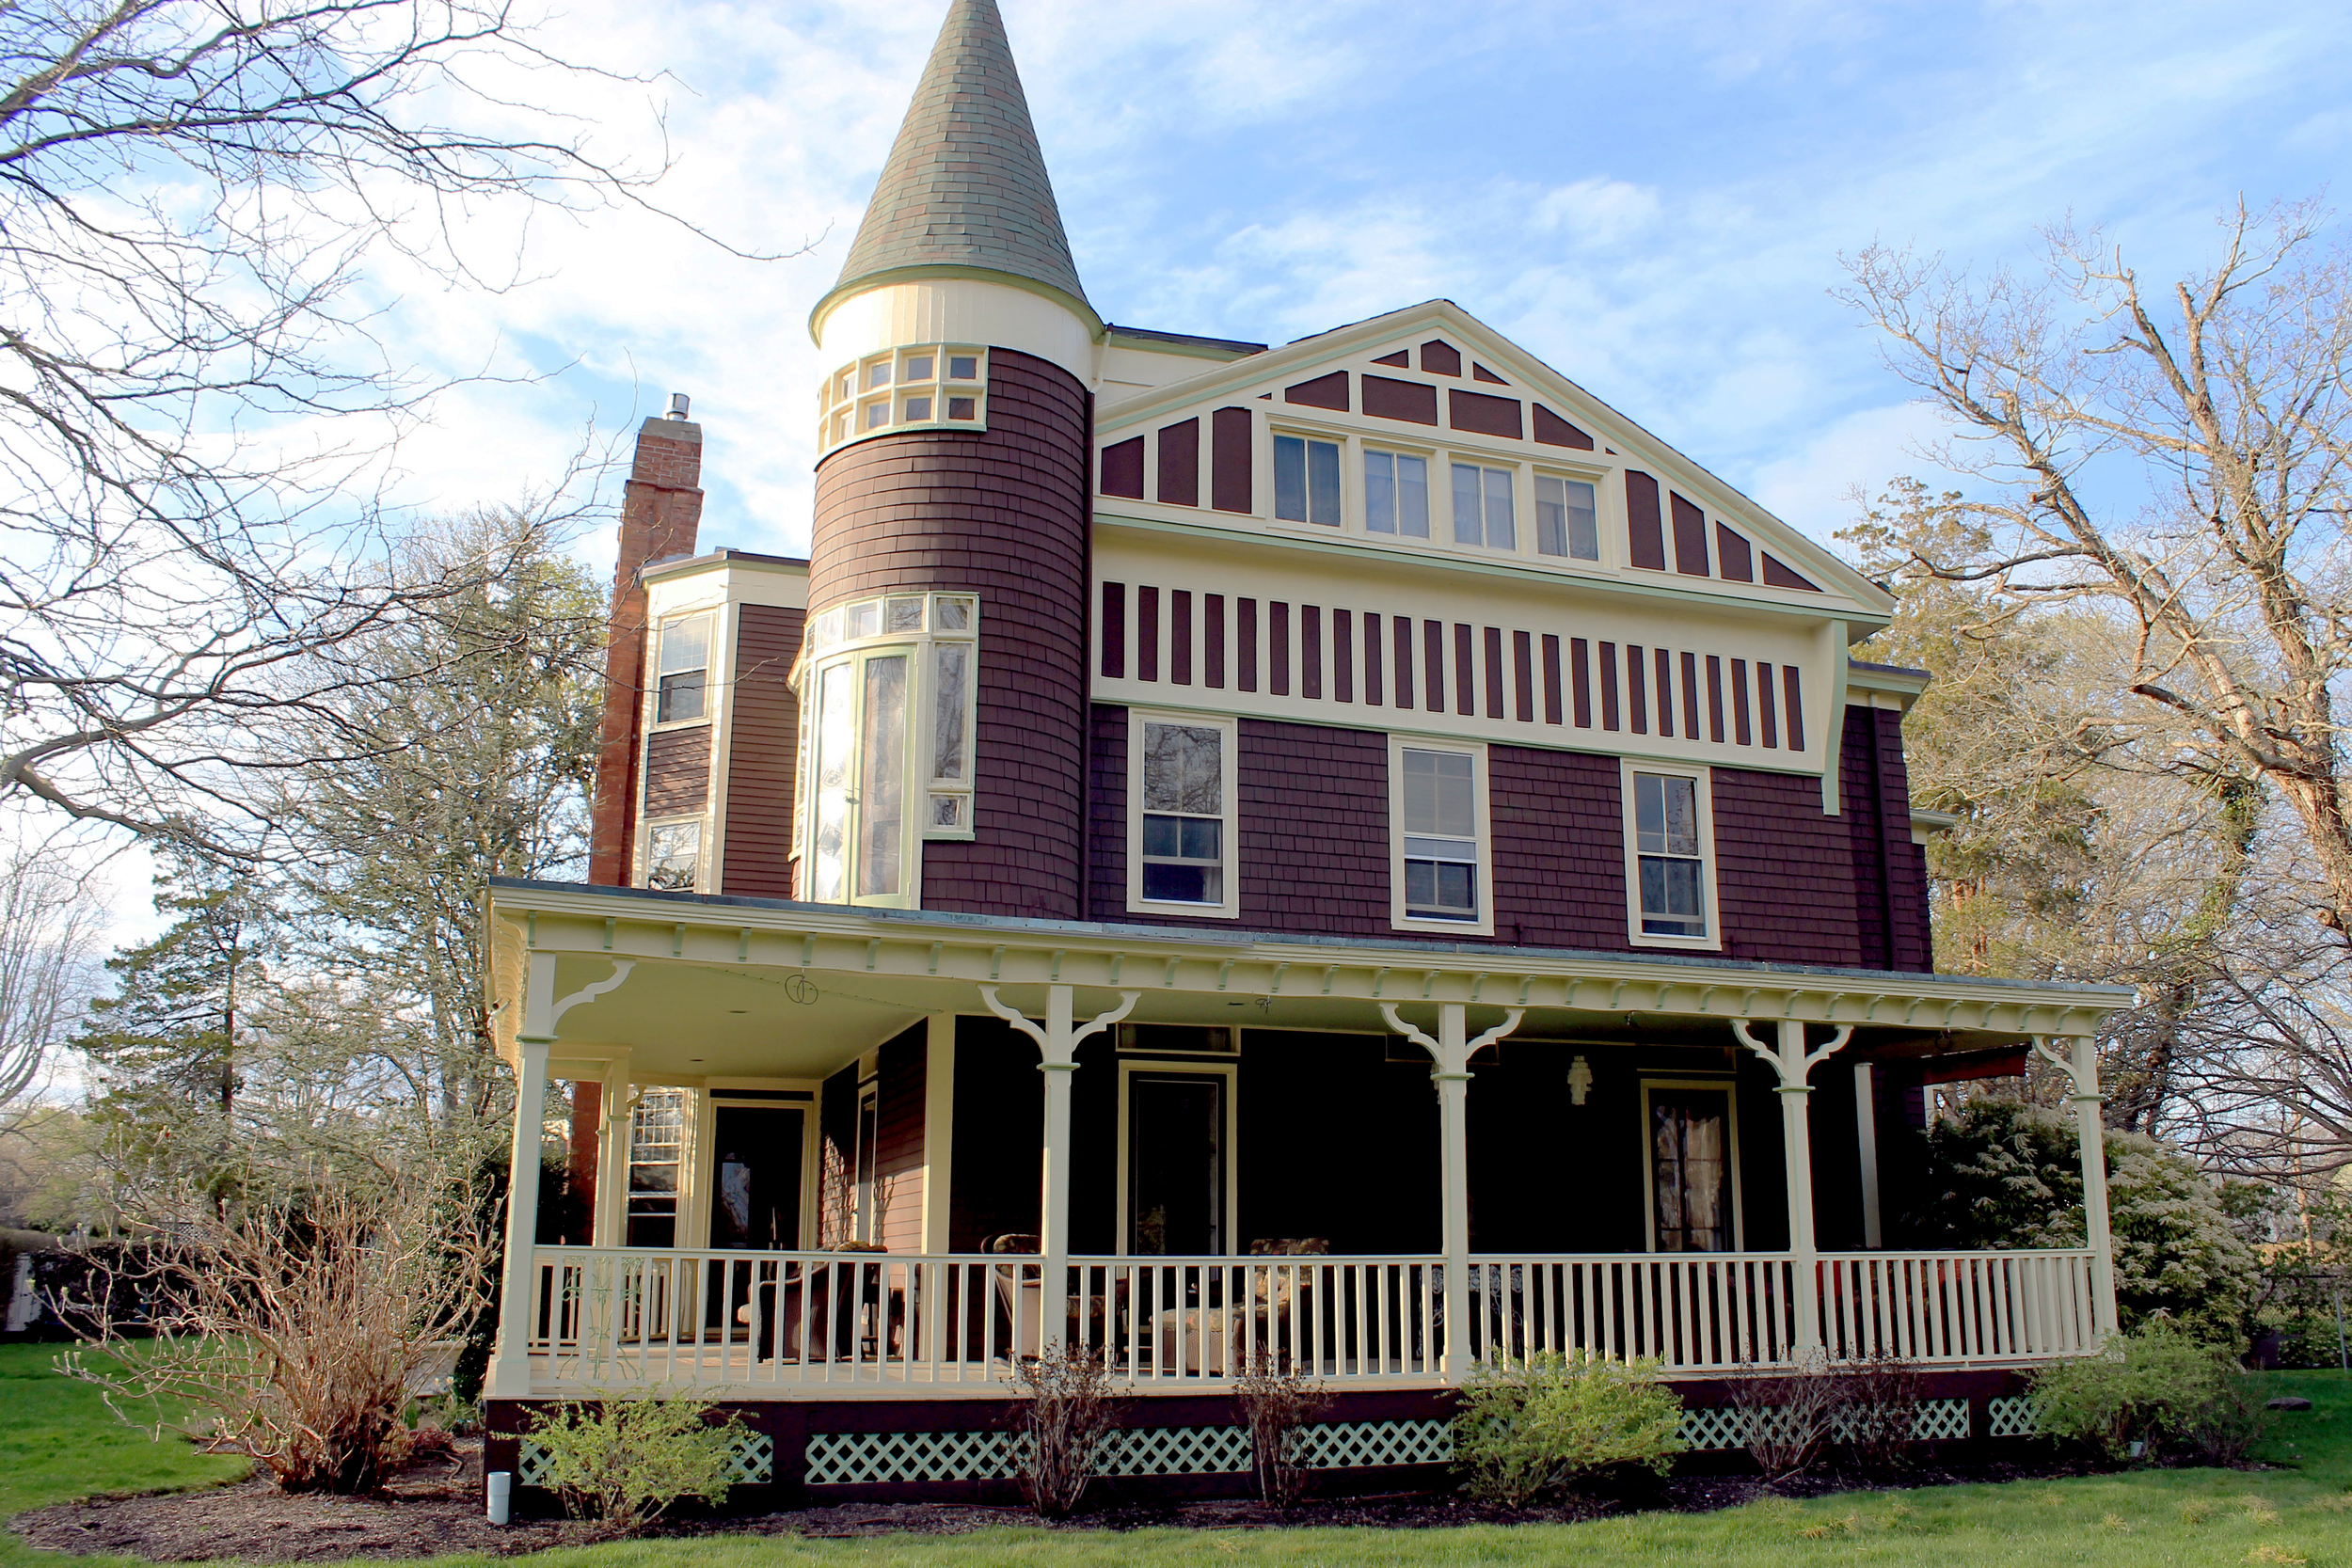 Ivy Lodge Bed & Breakfast